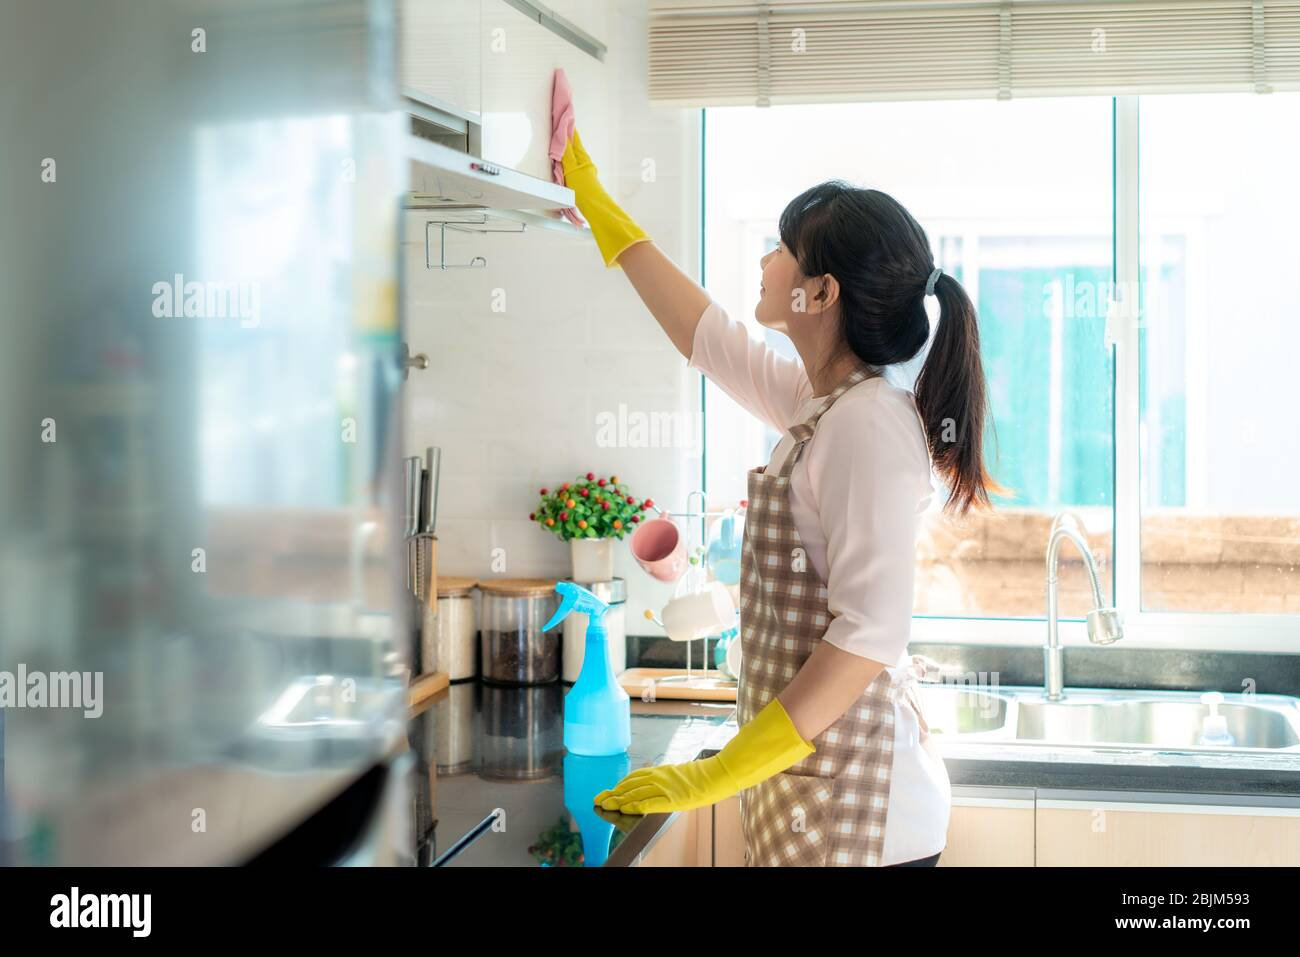 Asian woman wearing rubber protective gloves cleaning kitchen cupboards in her home during Staying at home using free time about their daily housekeep Stock Photo